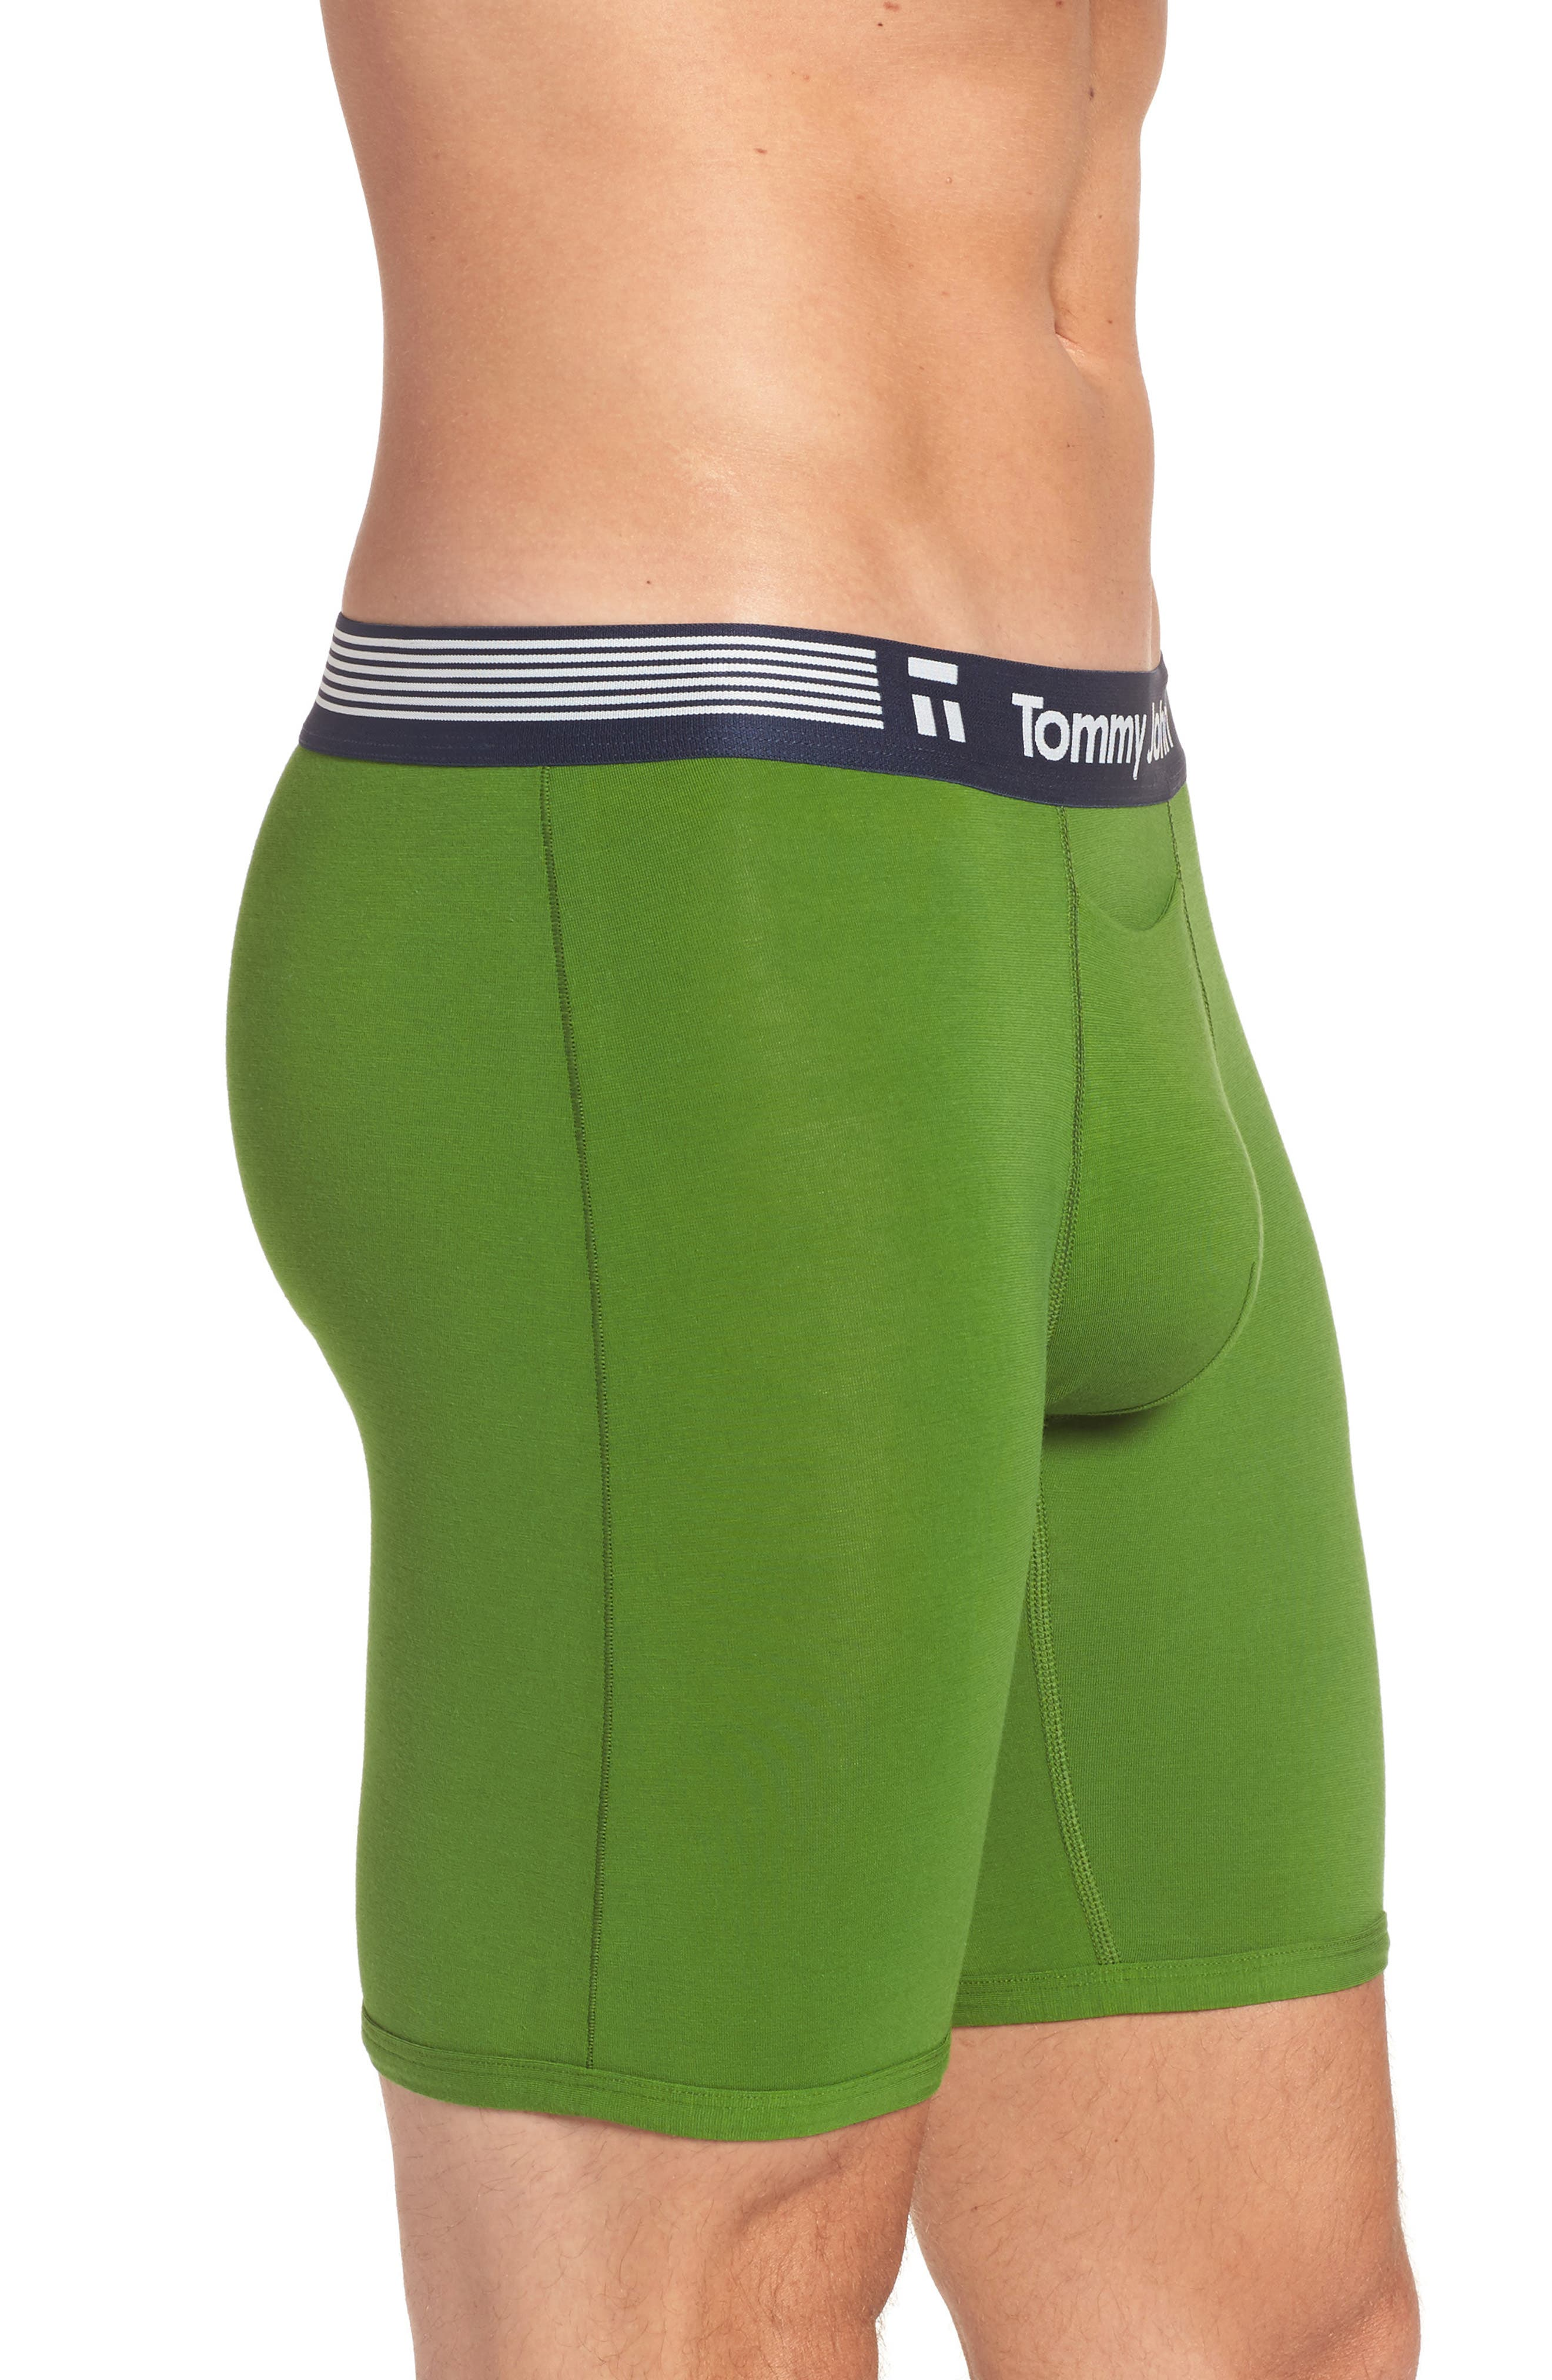 Cool Cotton Armory Boxer Briefs,                             Alternate thumbnail 3, color,                             Grass Green